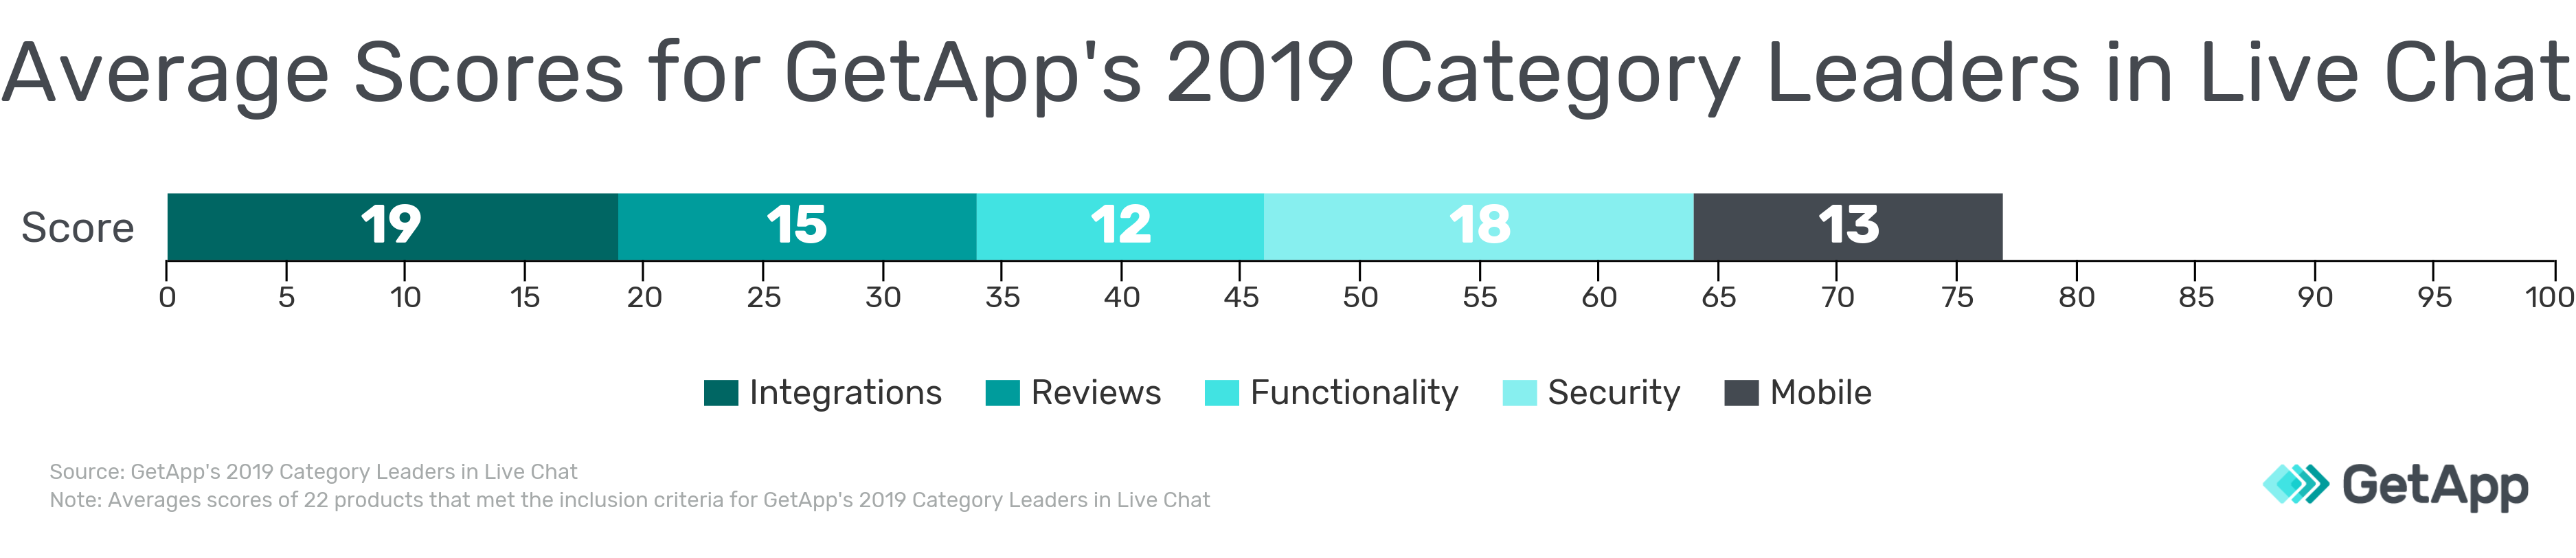 Average scores for GetApp's 2019 Category Leaders in Live Chat scale